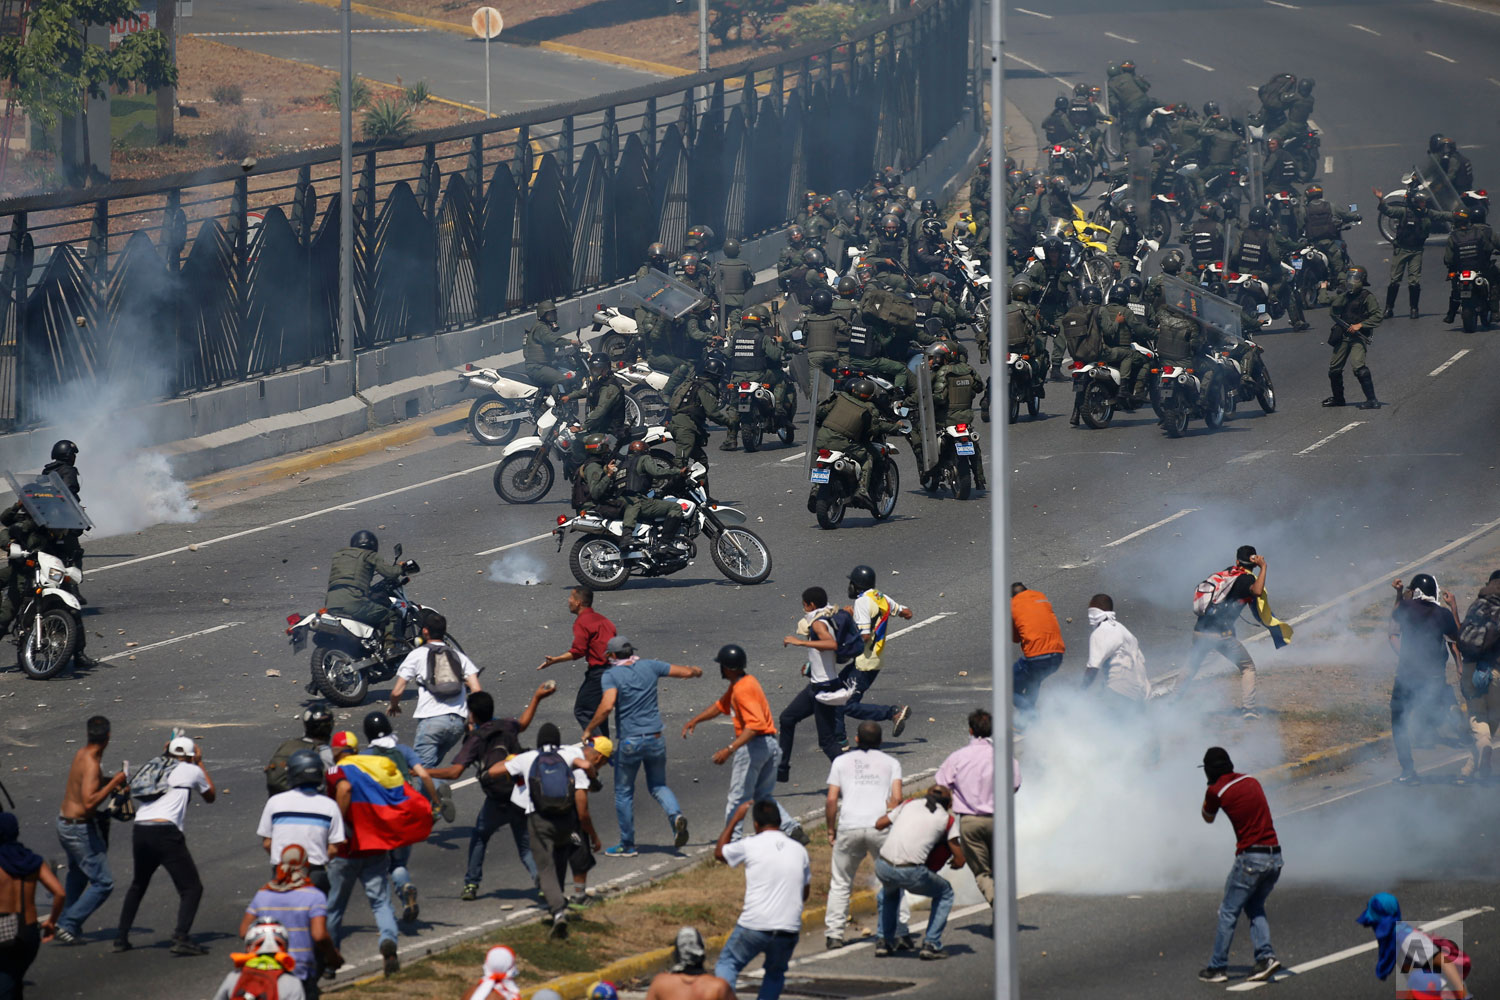 Opponents to Venezuela's President Nicolas Maduro confront loyalist Bolivarian National Guard troops firing tear gas at them, outside La Carlota military airbase in Caracas, Venezuela, Tuesday, April 30, 2019.  (AP Photo/Fernando Llano)